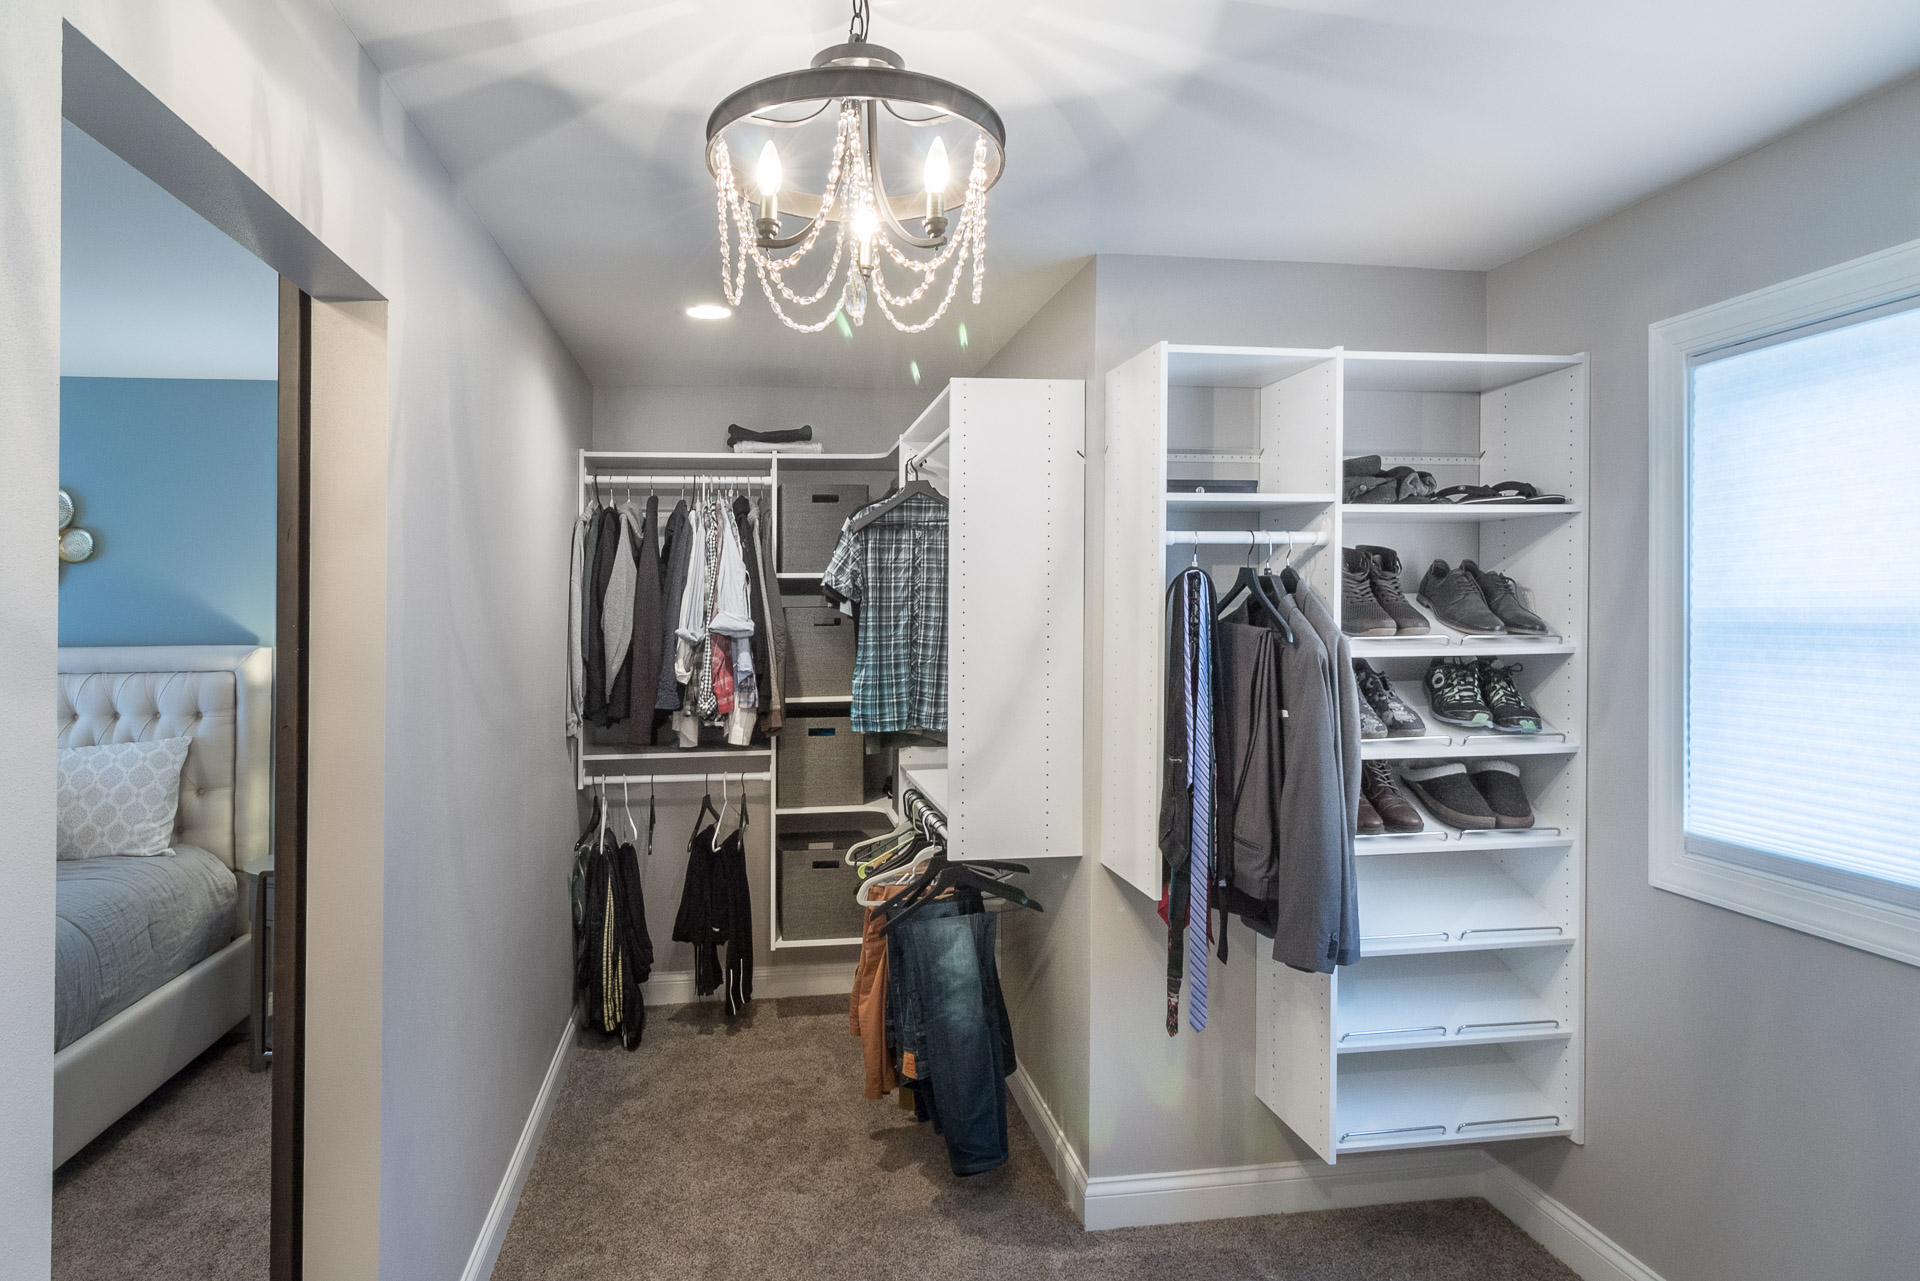 Master Suite Walk-in Closet with Window